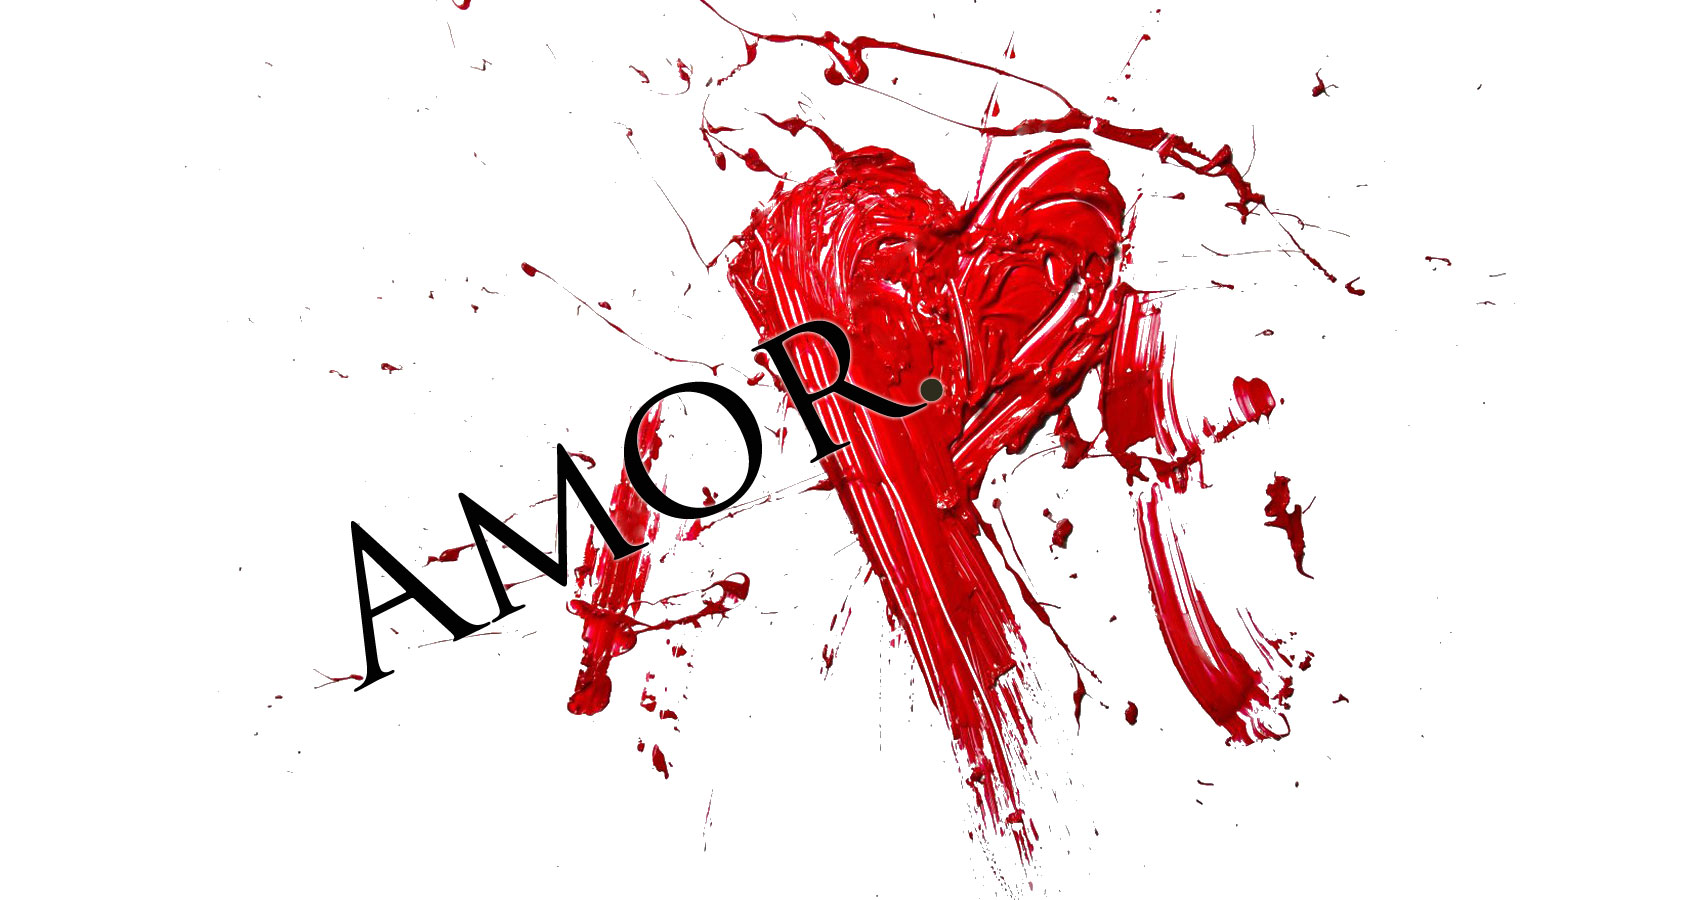 Amor. by Sentimentalismo poético at Spillwords.com